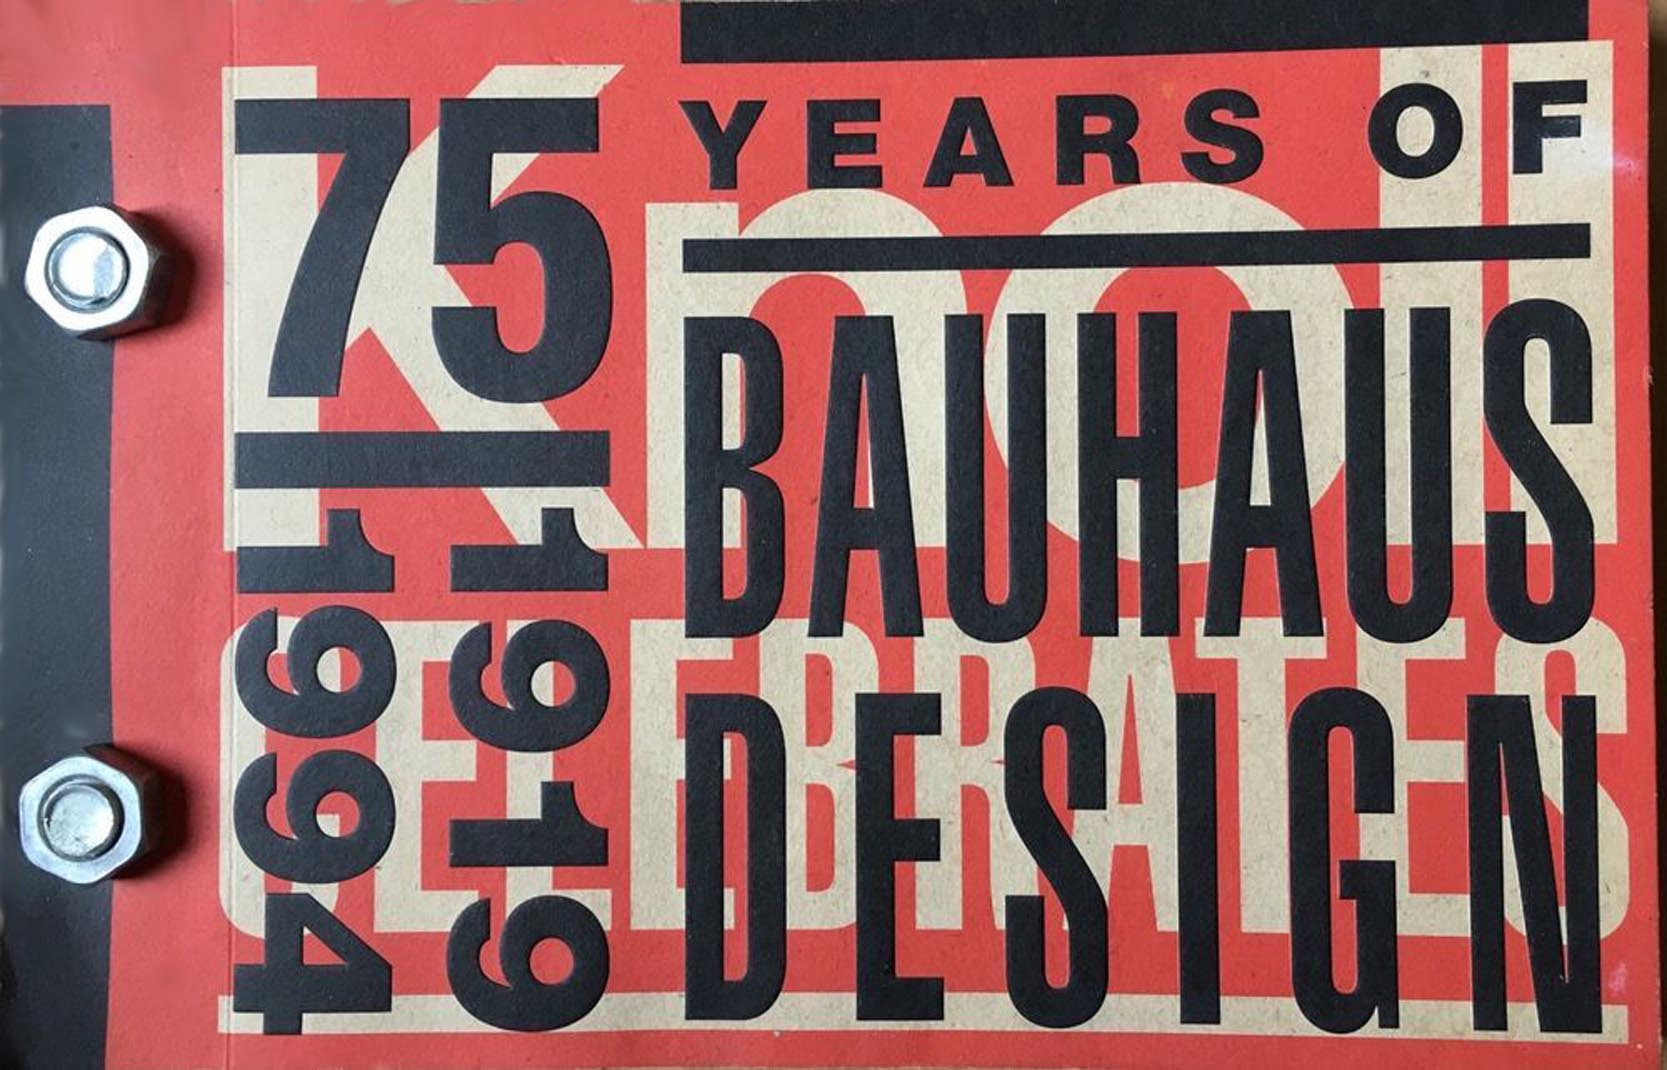 3) Knoll 75 Years of Bauhaus Design.jpg